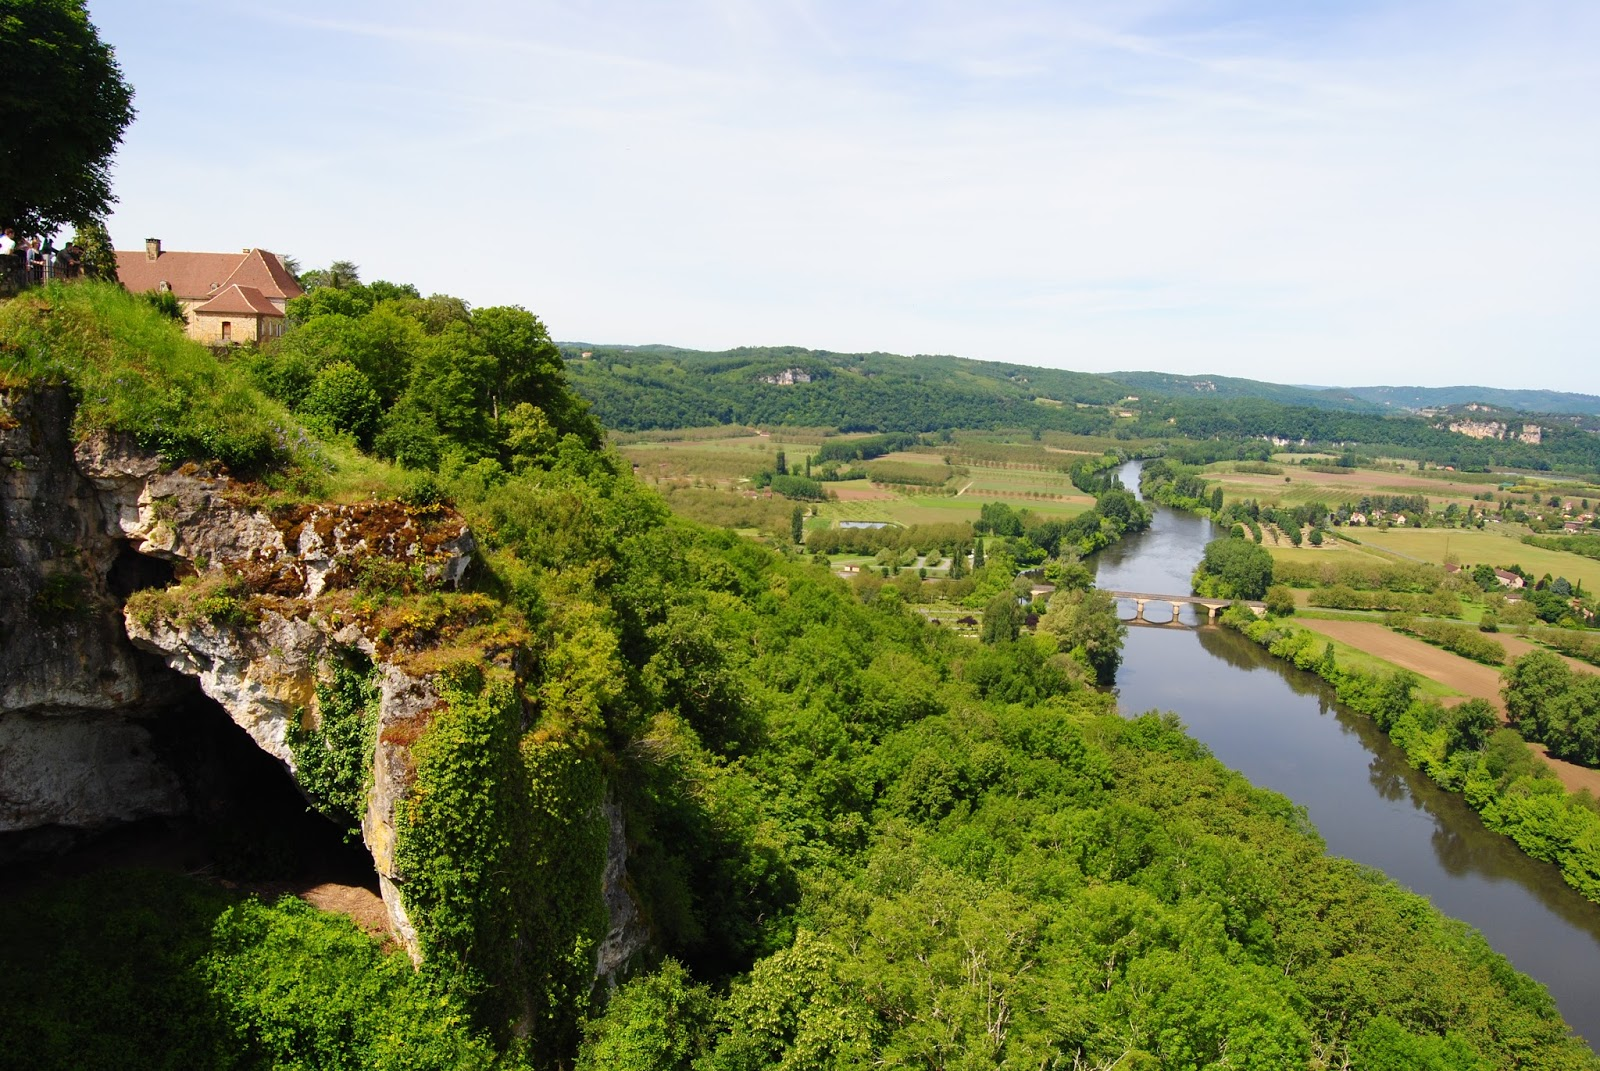 View of the Dordogne Valley from Domme